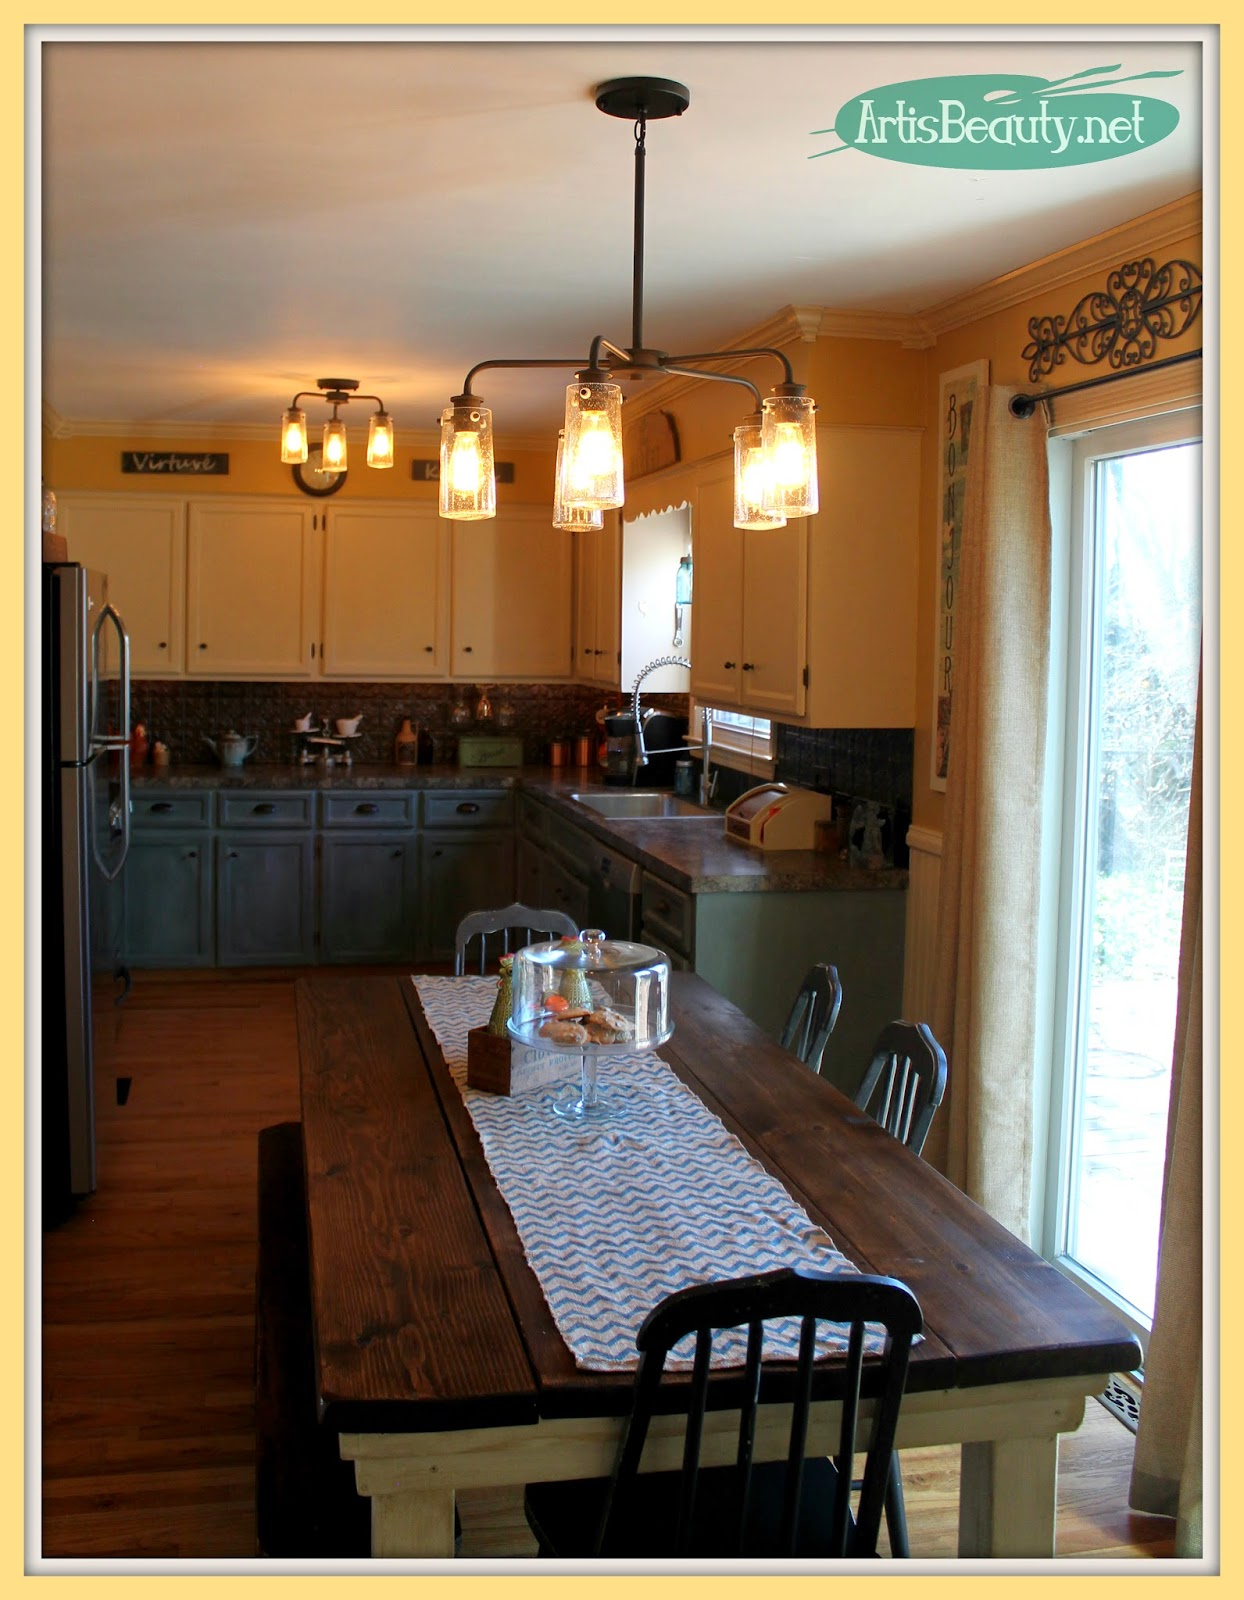 ART IS BEAUTY: Vintage Style Kitchen Lighting Update! Buh